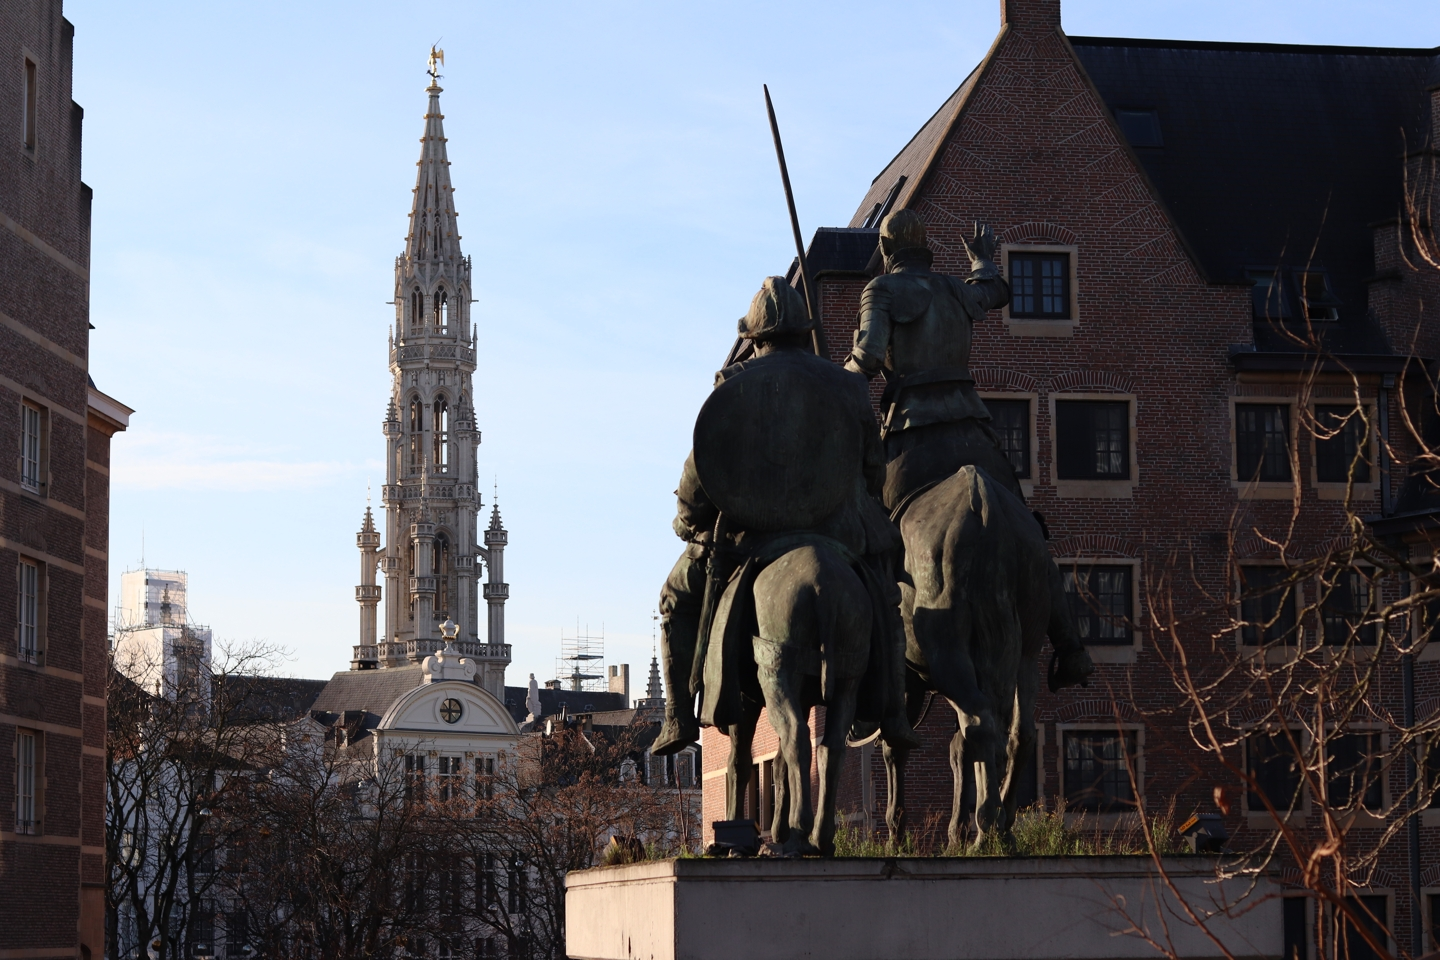 View on the tower of the grote markt and a statue of two people on horses.